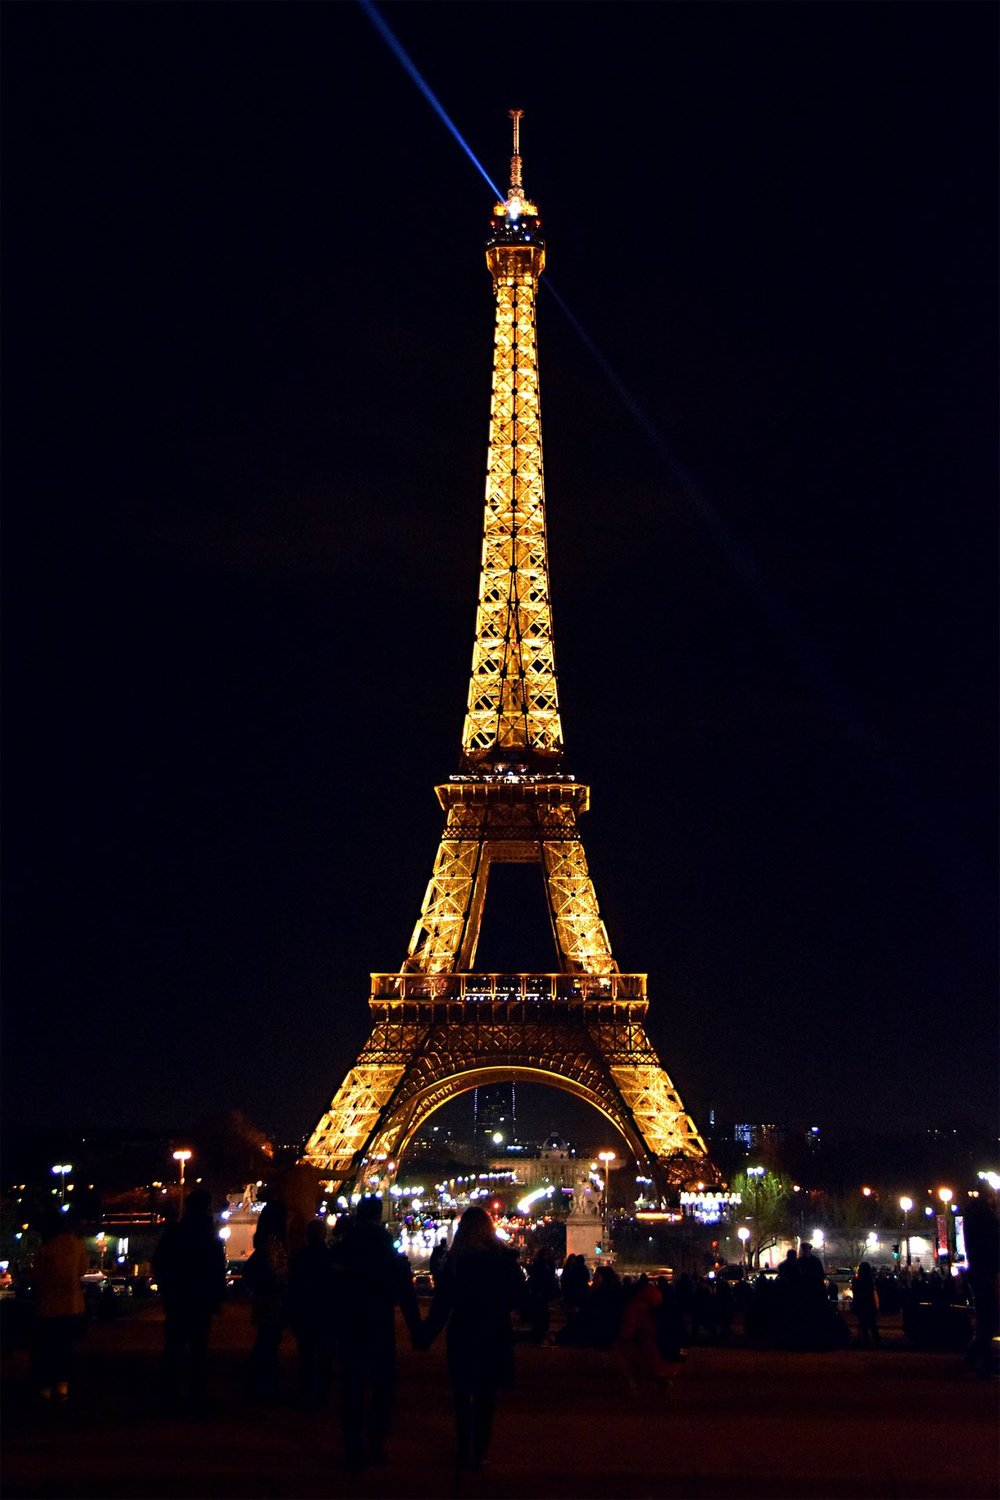 eiffel-tower-2112173_1920-sm.jpg